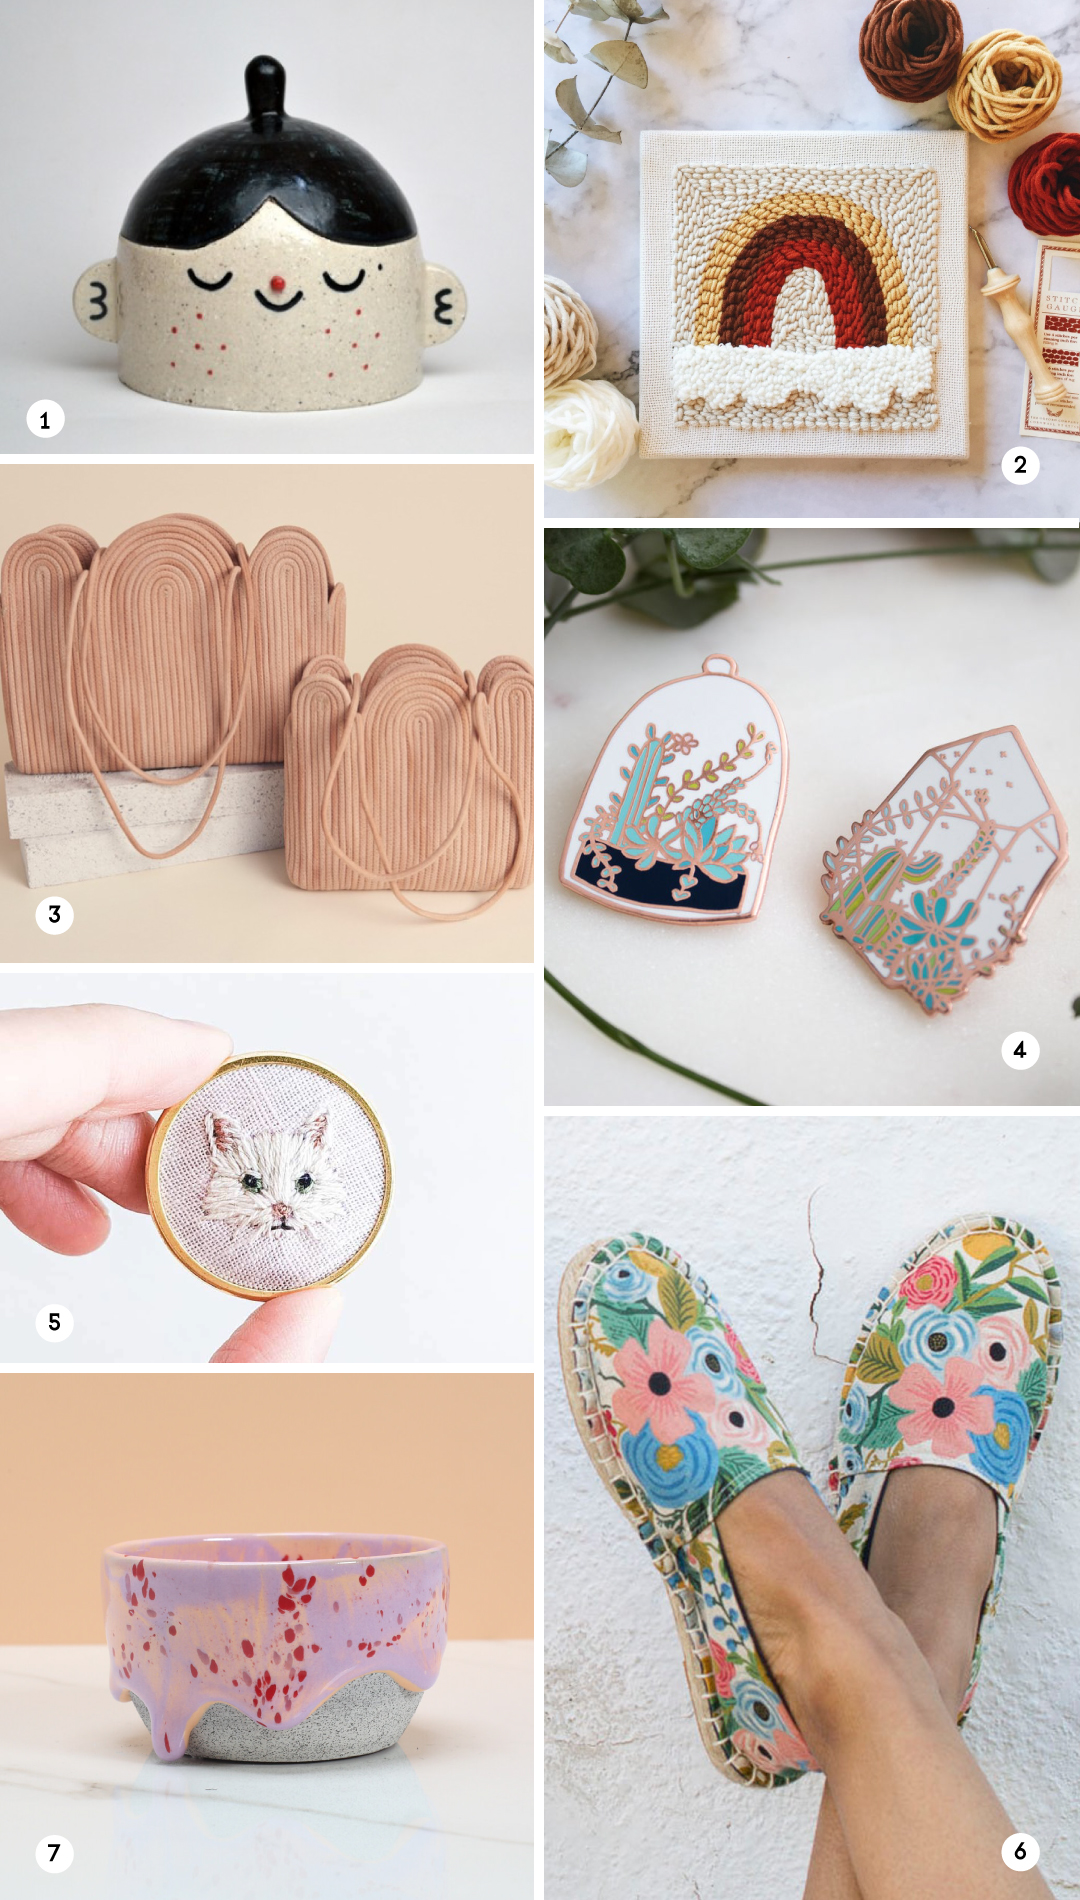 Shopping Small, Day 4: Playful Creative Products That Support Independent Makers